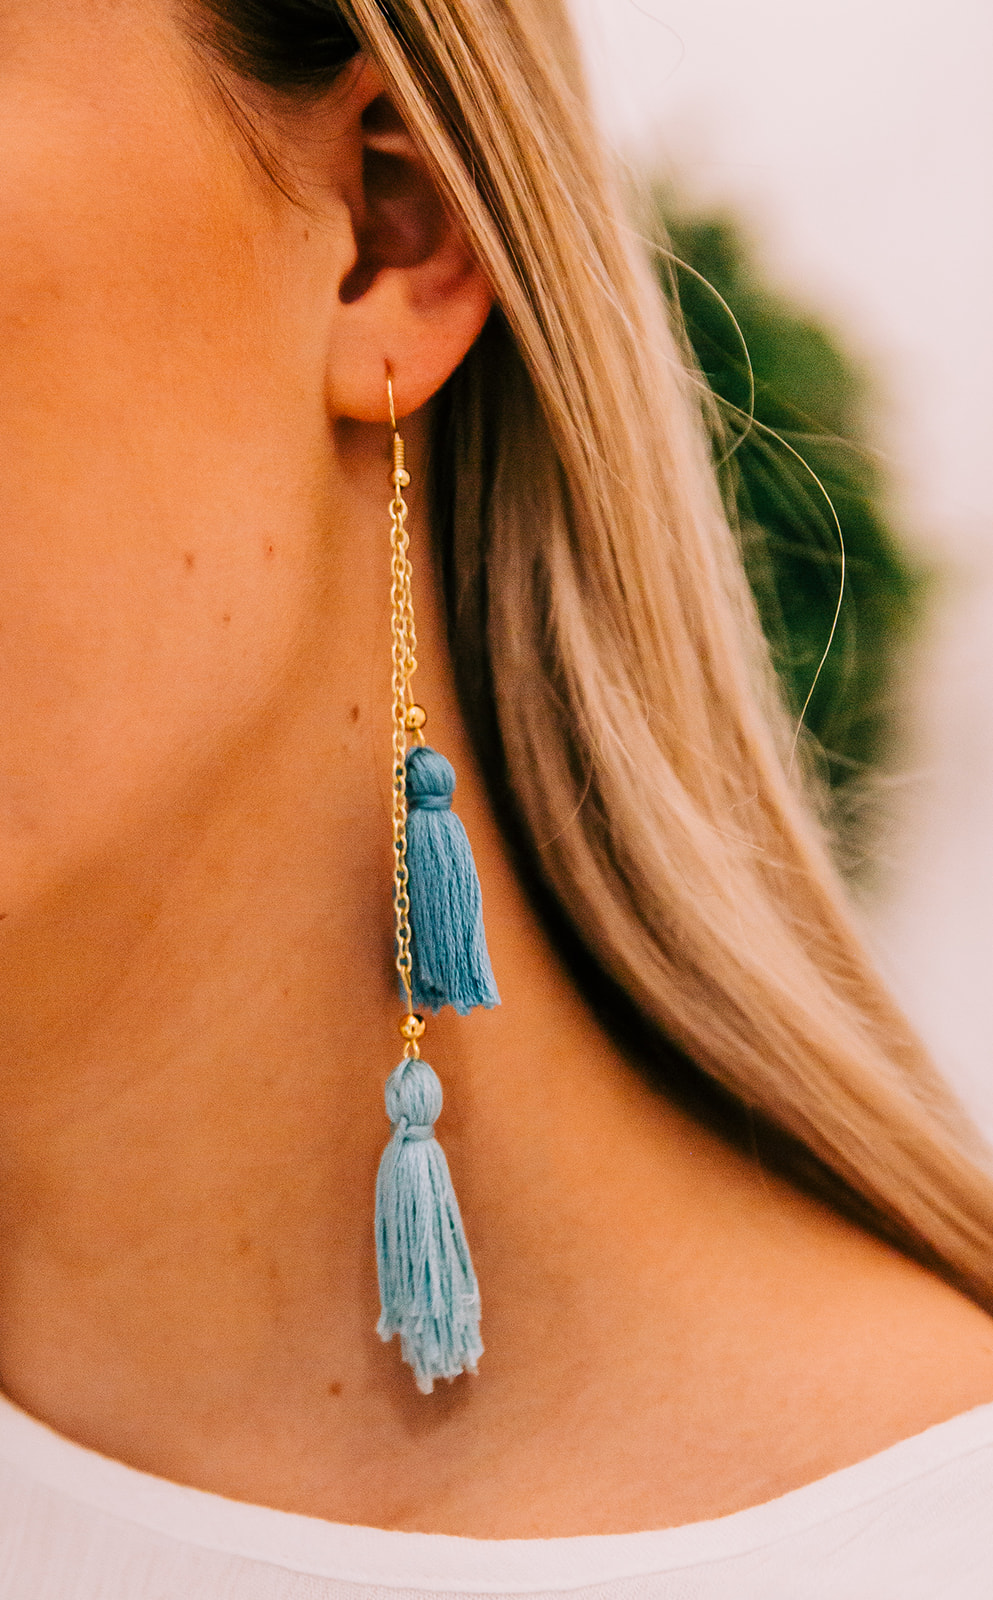 Product photos earrings tassels jewelry boutique online shop commercial photography logan utah bella alder photography professional product photographer #bellaalderphoto #productphotos #commercialphotography #jewelryboutique #onlineboutique #etsyphotos #professionalpics #laytonutahphotographer #loganutahphotographer